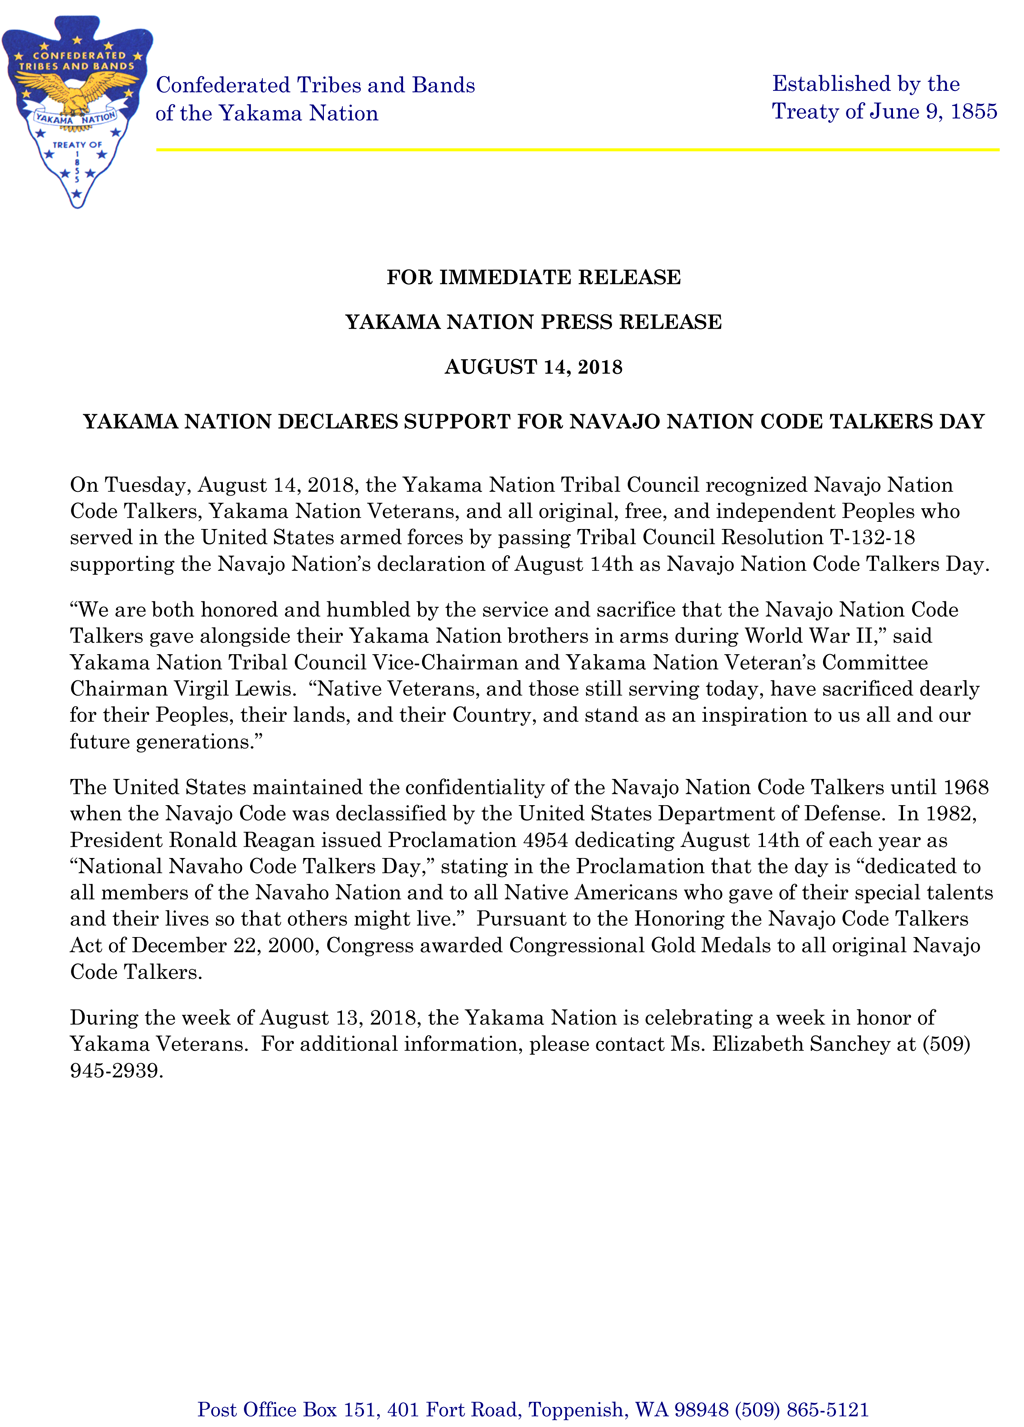 Yakama Nation declares support for Navajo Nation Code